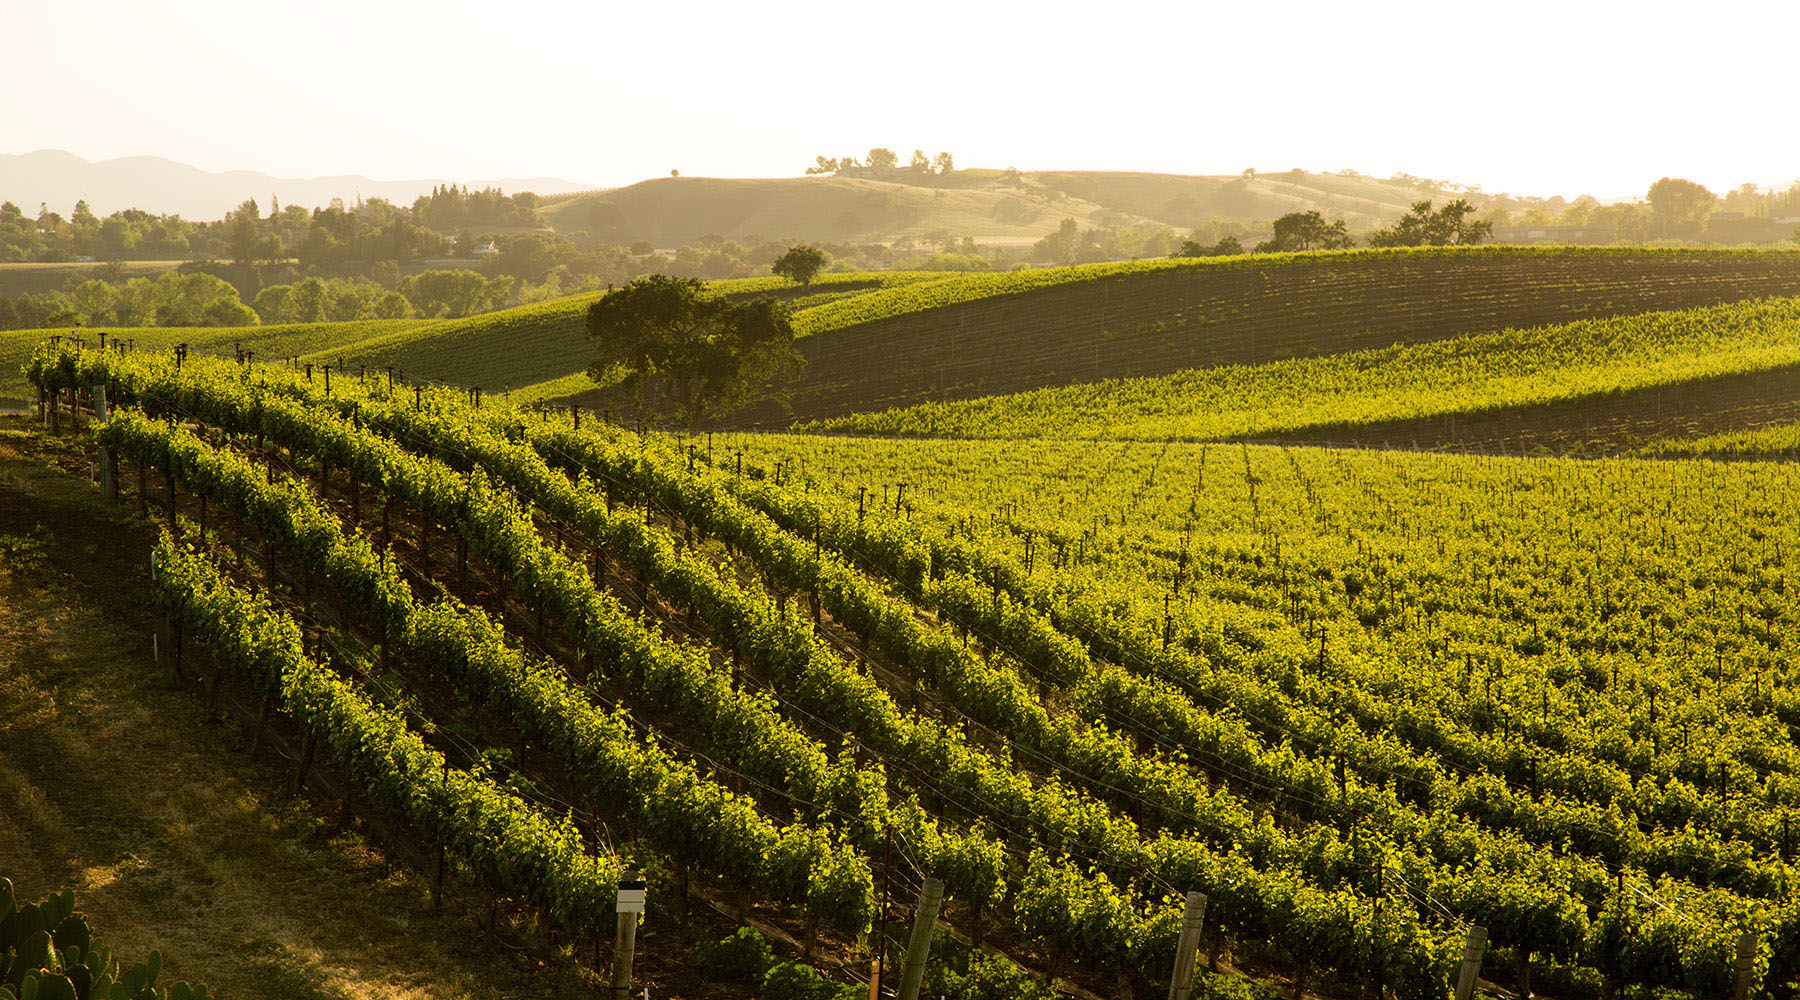 7-NIGHT CALIFORNIA WINE ADVENTURE VOYAGE